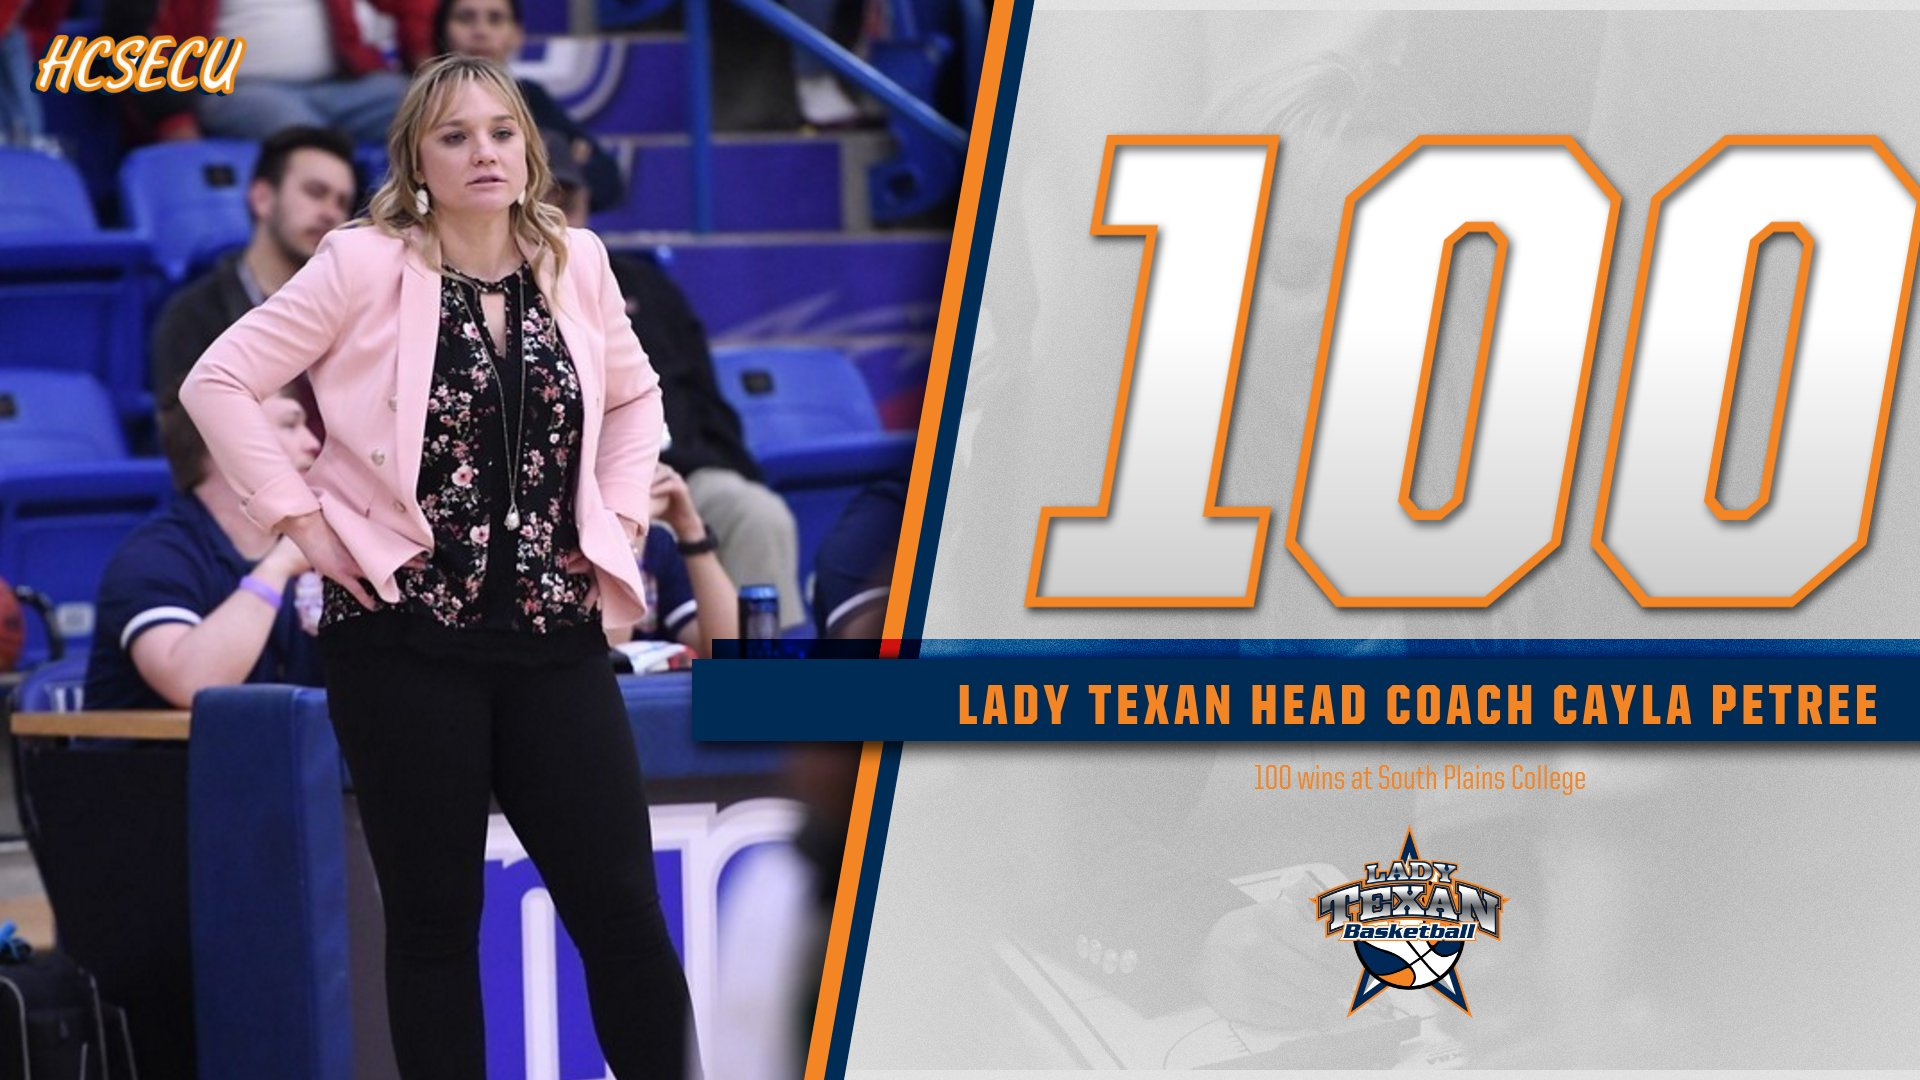 Petree gets win number 100 as No. 2 Lady Texans trounce No. 13 Salt Lake 77-35